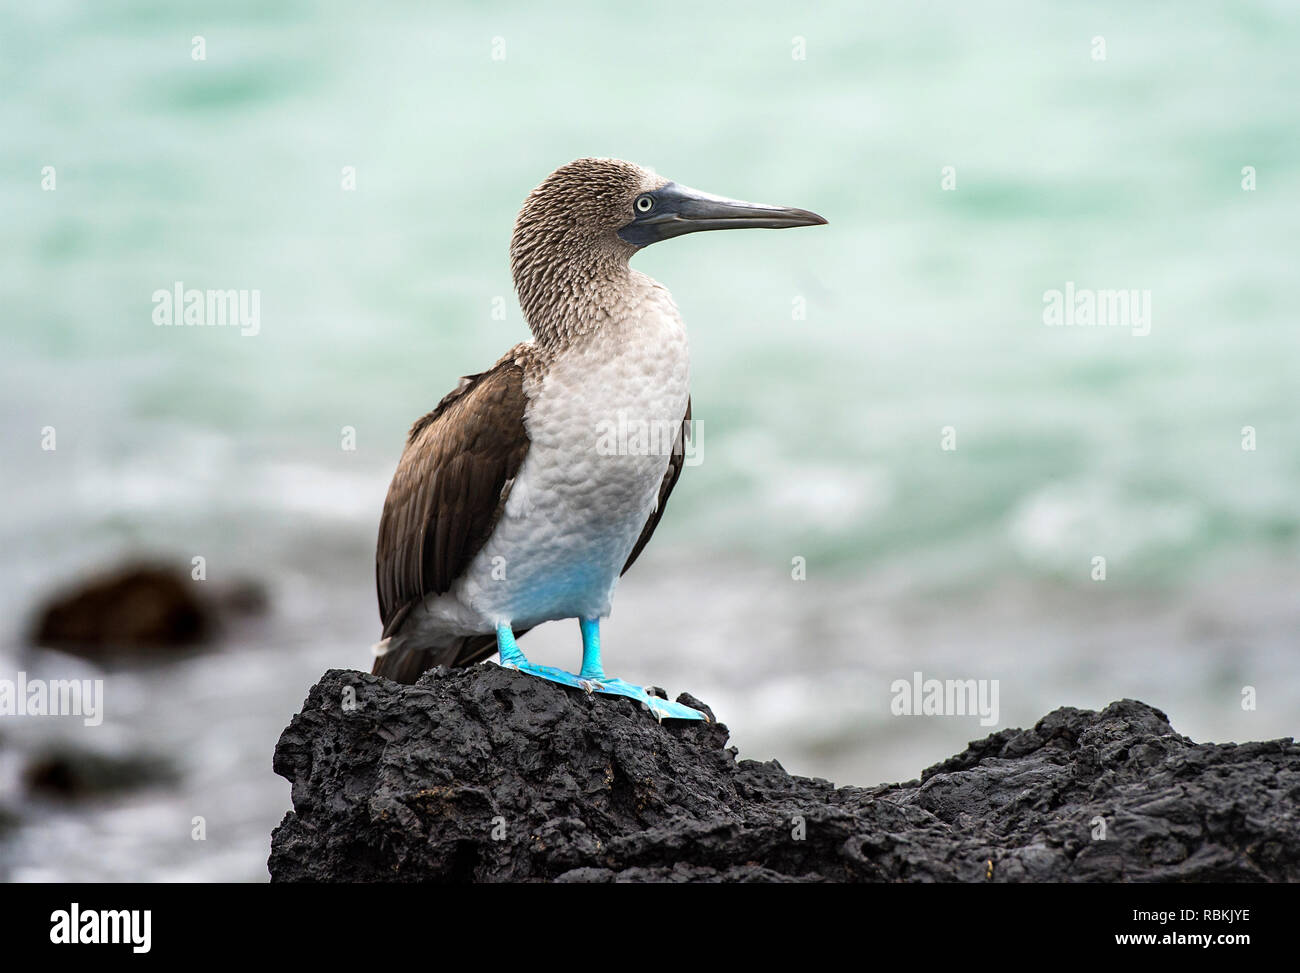 Blue-footed booby (Sula nebouxii), a marine bird of the boobies family (Sulidae), endemic to Galapagos, Isabela Island, Galapagos Islands, Ecuador - Stock Image